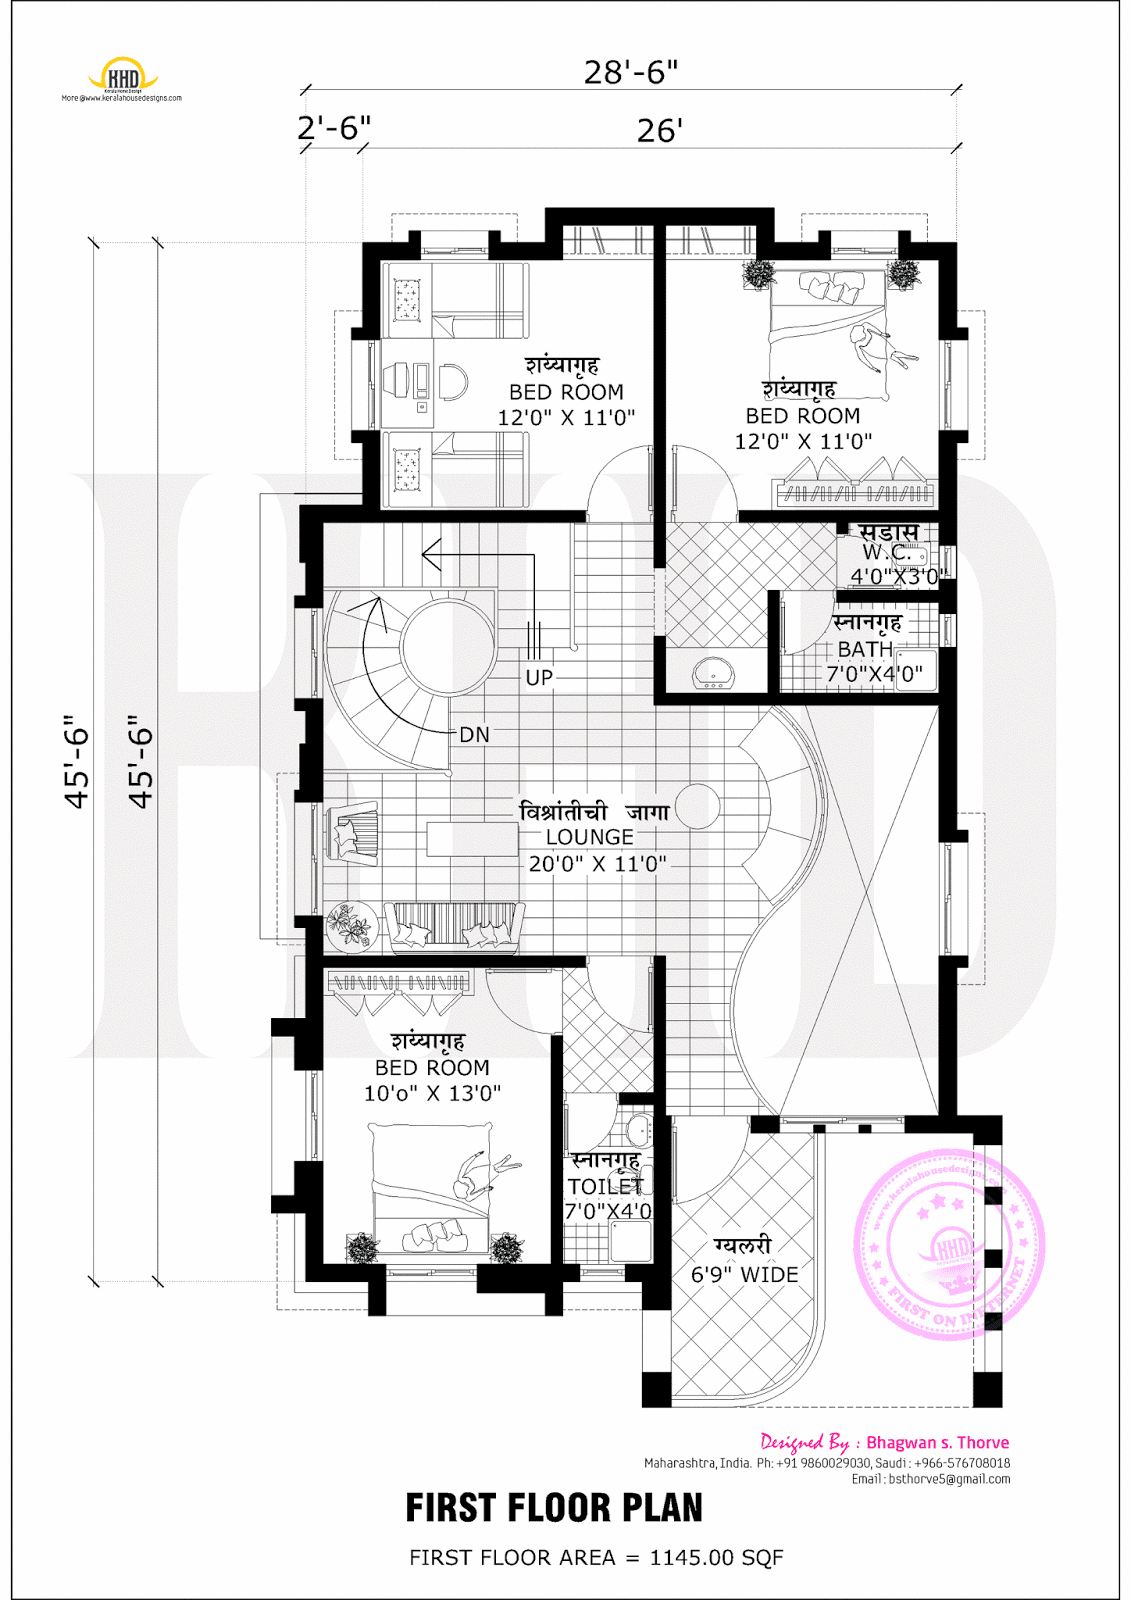 2365 Square Feet 3 Bedroom Flat Roof Style House With Free Floor Plan By Bhagwan S Thorve Maharastr Craftsman Style House Plans Free Floor Plans House Plans